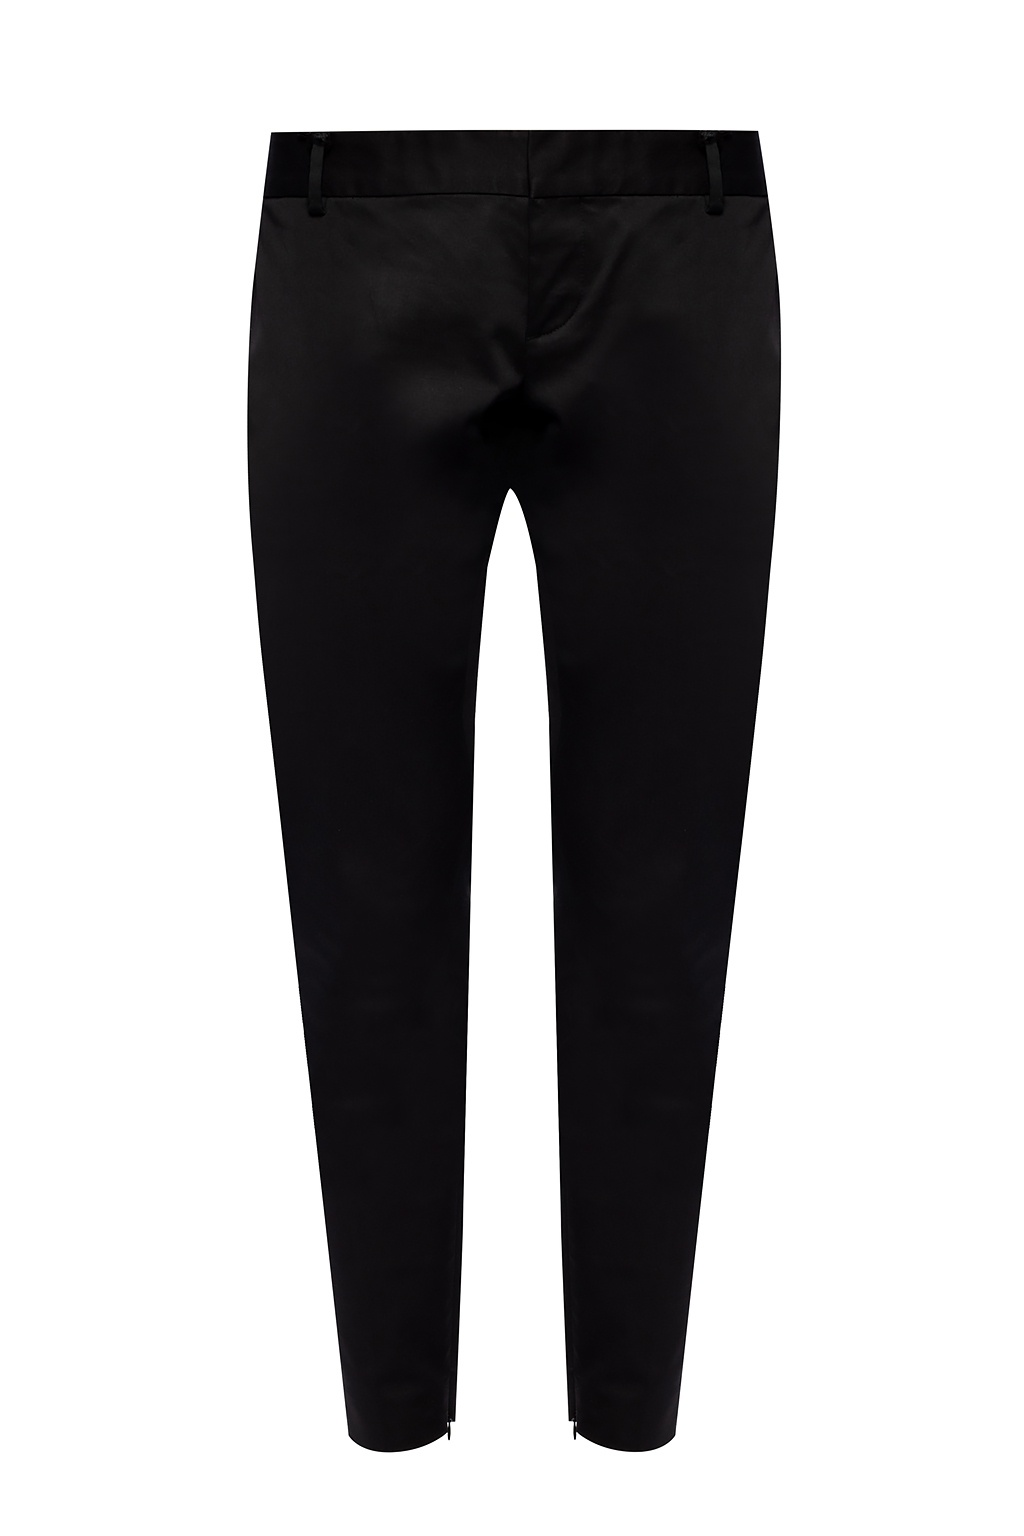 Dsquared2 Creased Trousers